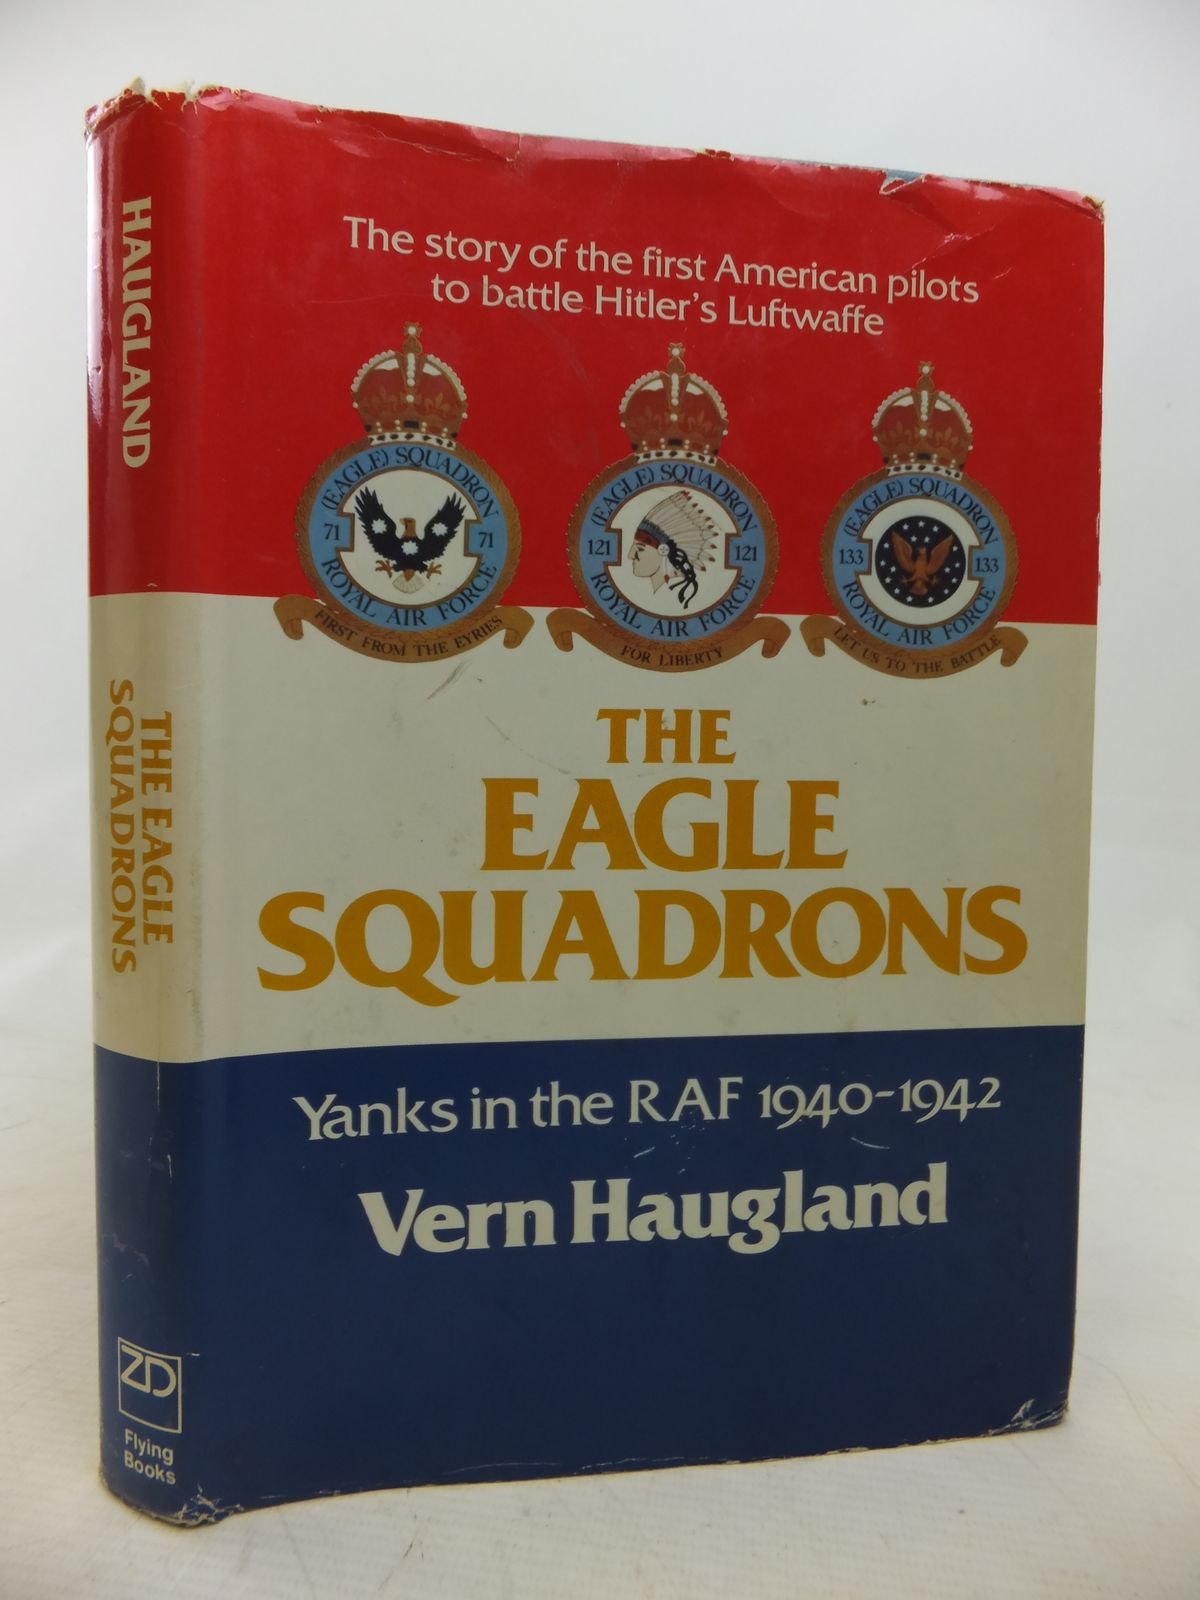 Photo of THE EAGLE SQUADRONS YANKS IN THE RAF 1940-1942 written by Haugland, Vern published by Ziff Davis (STOCK CODE: 2115212)  for sale by Stella & Rose's Books